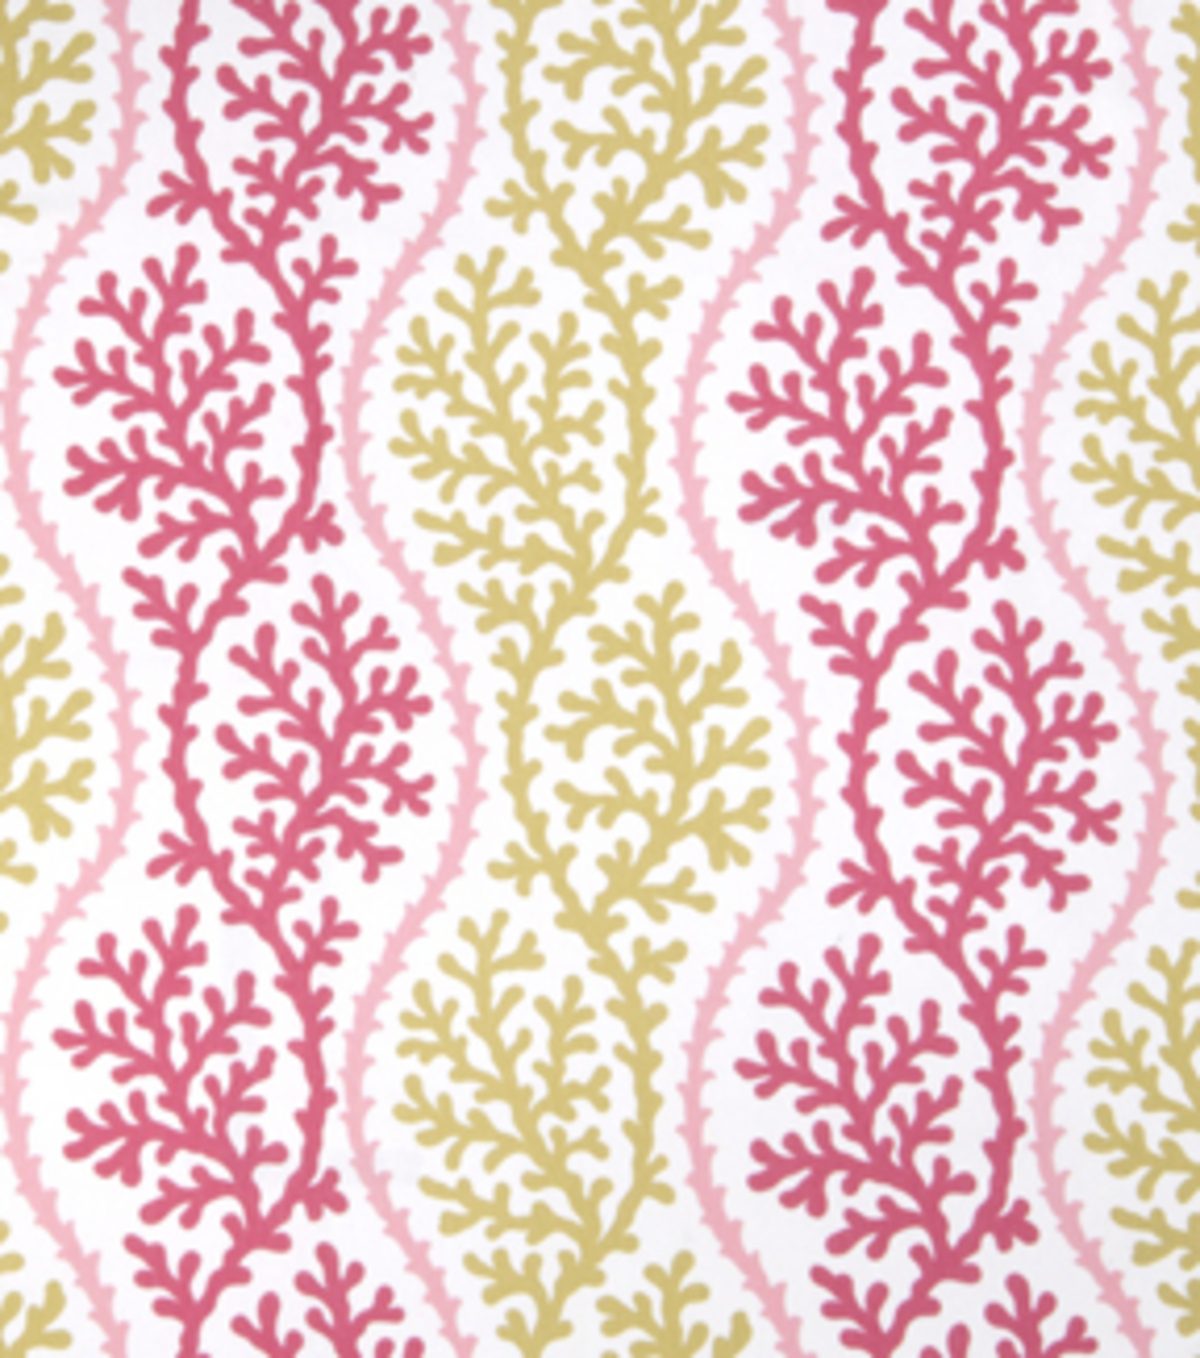 Home Decor 8\u0022x8\u0022 Fabric Swatch-Eaton Square Ducks Pink Coral